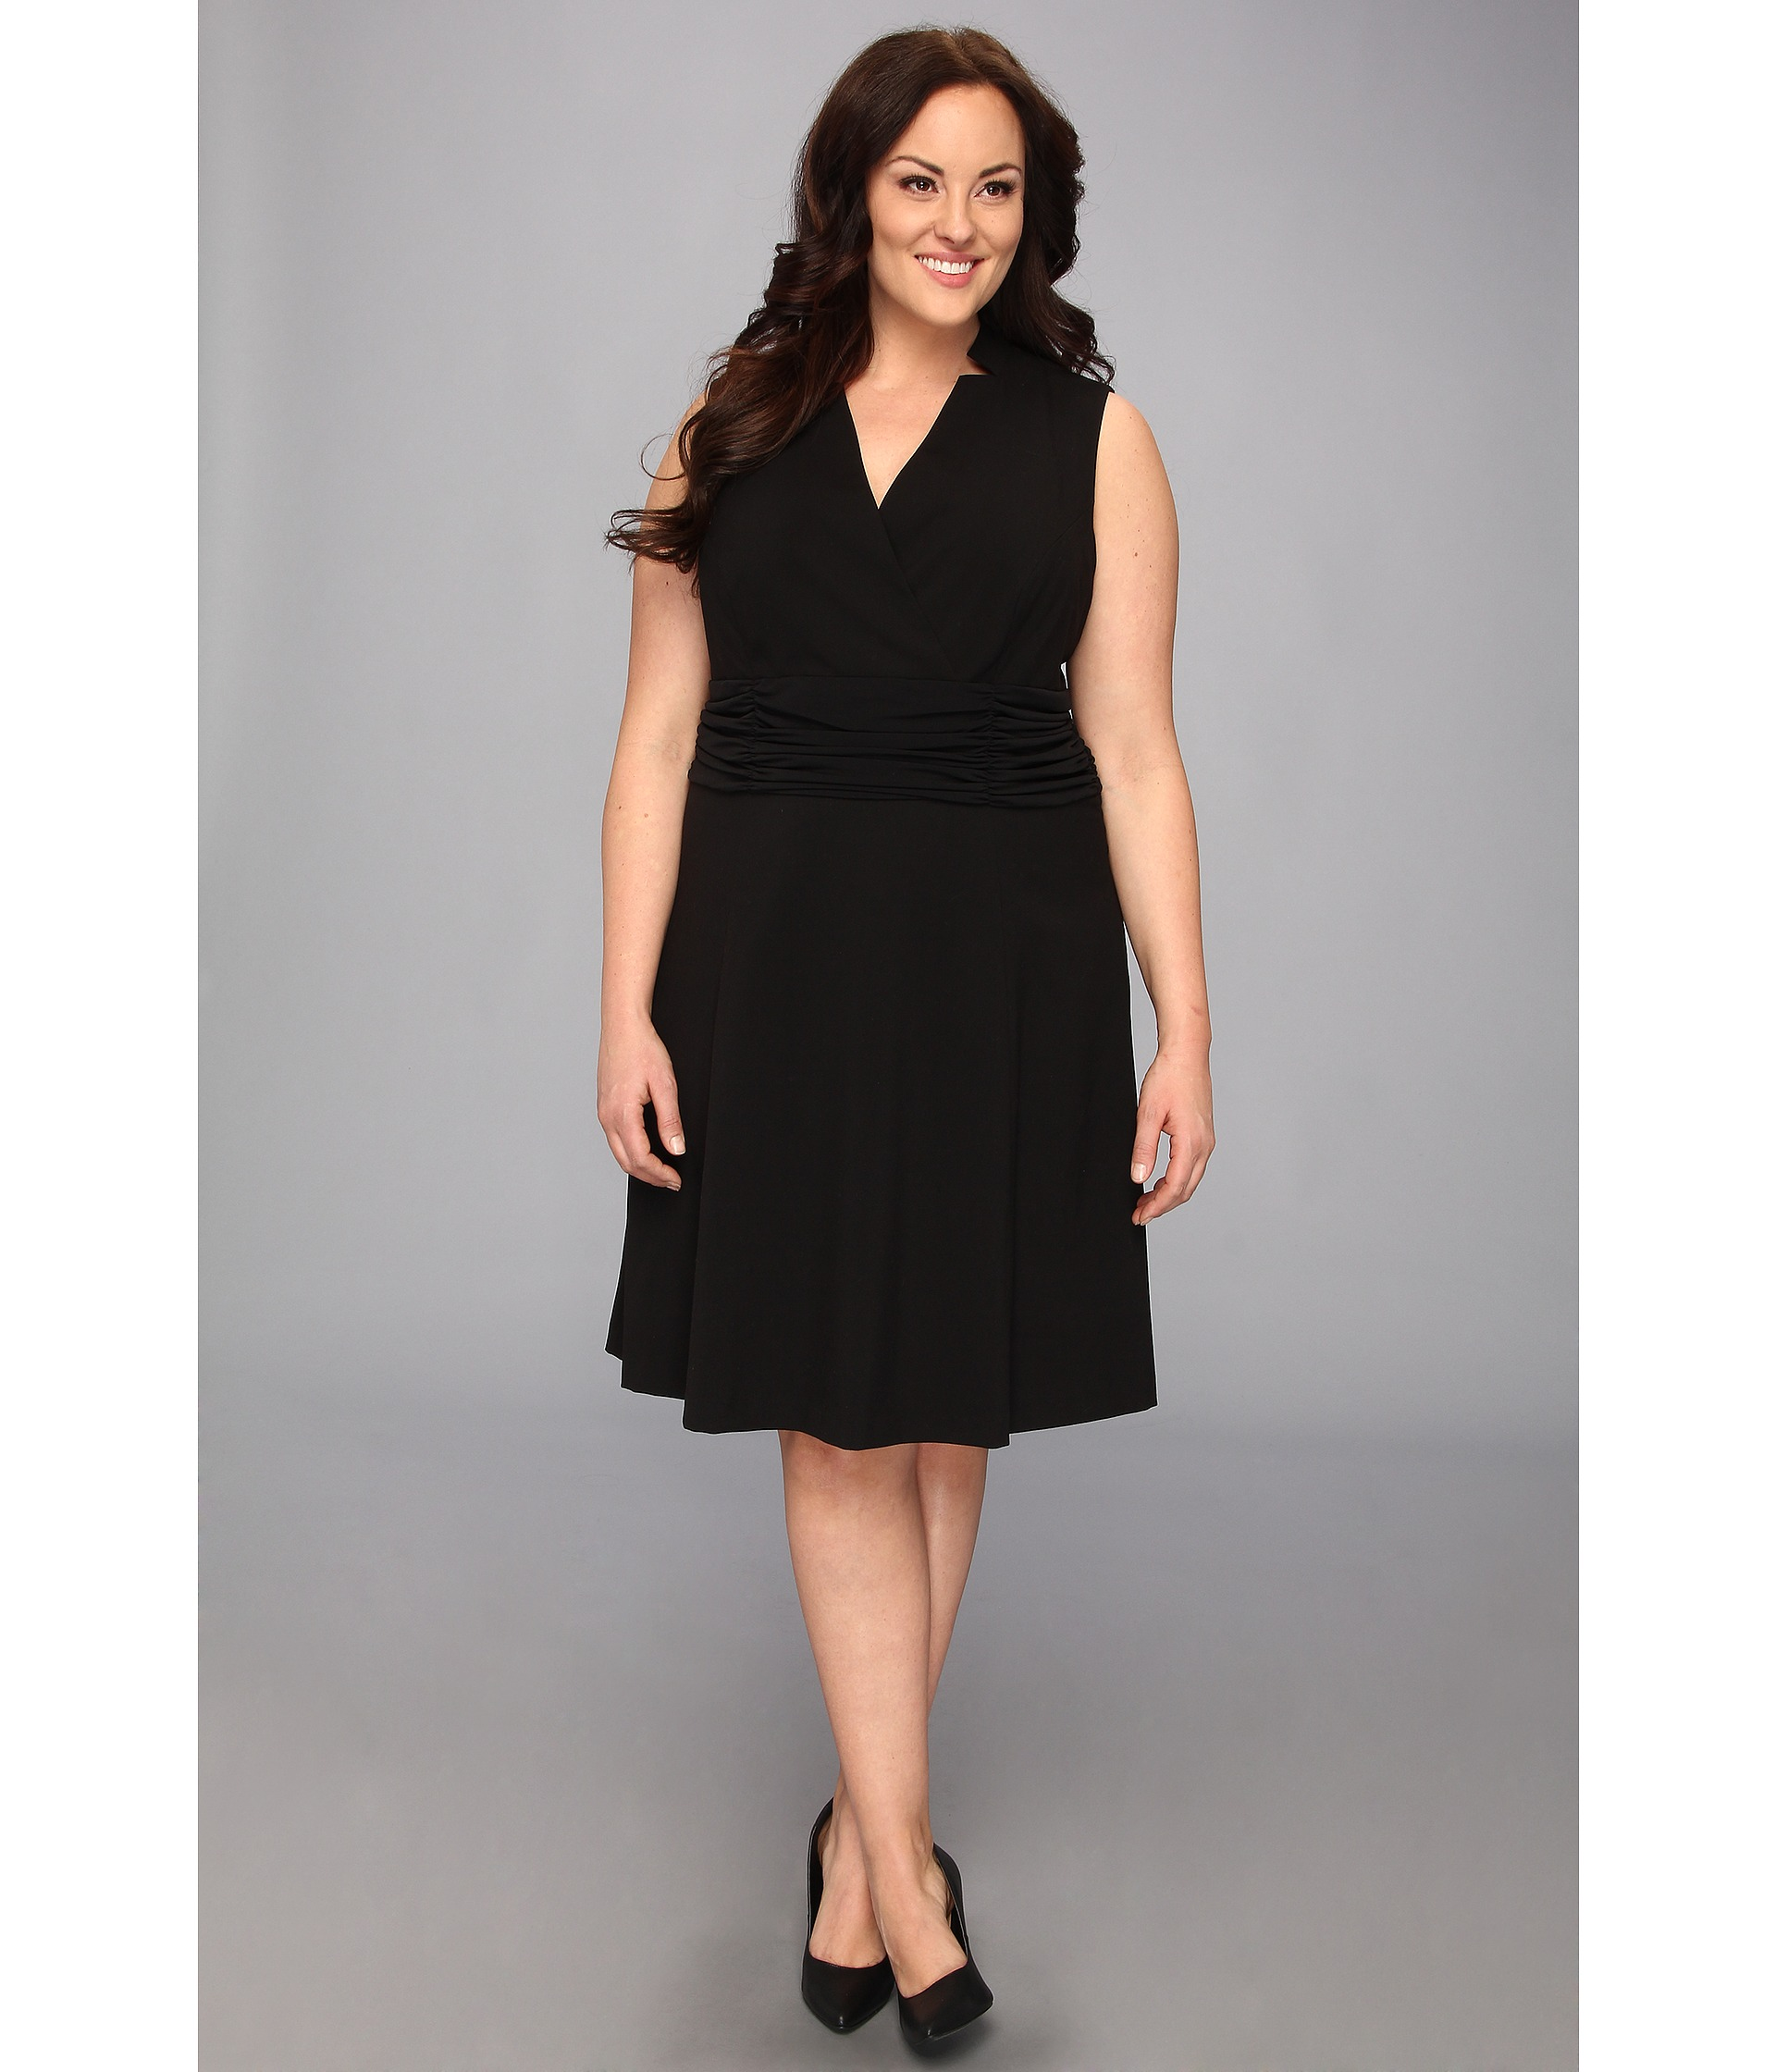 plus size attire sears